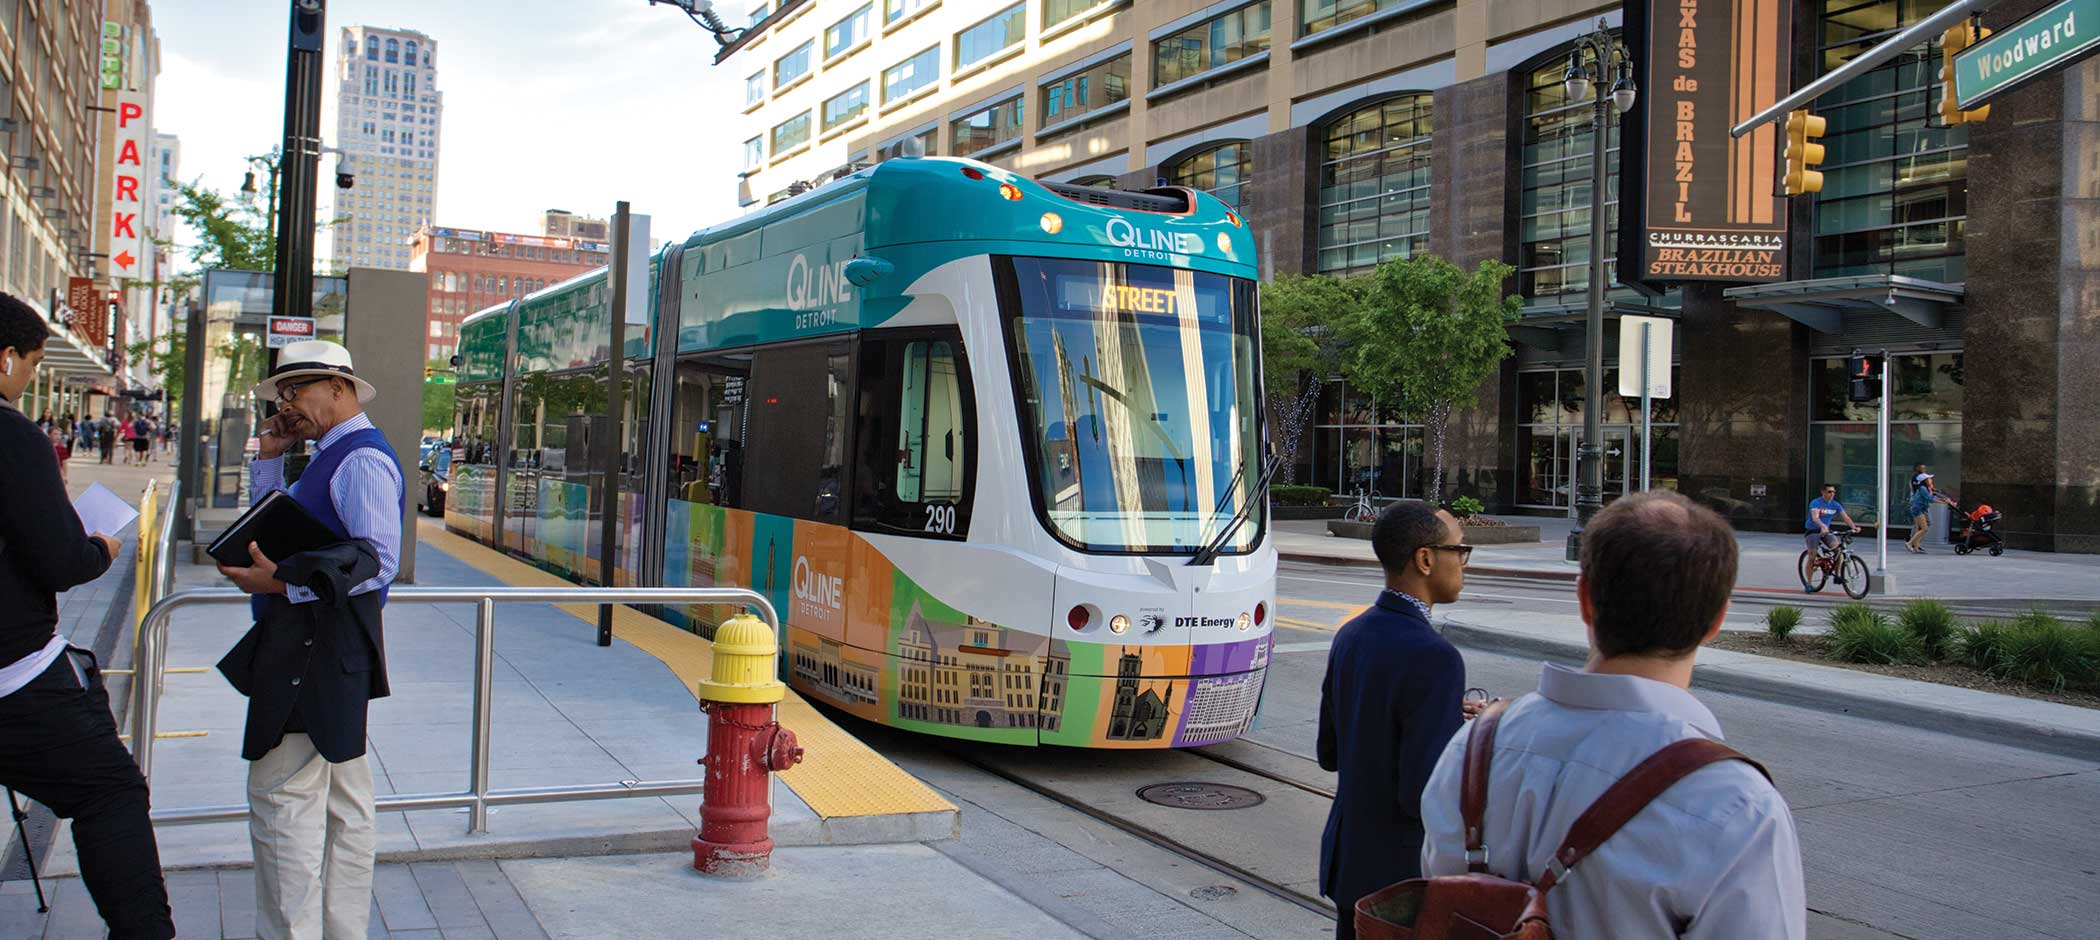 QLine in Detroit